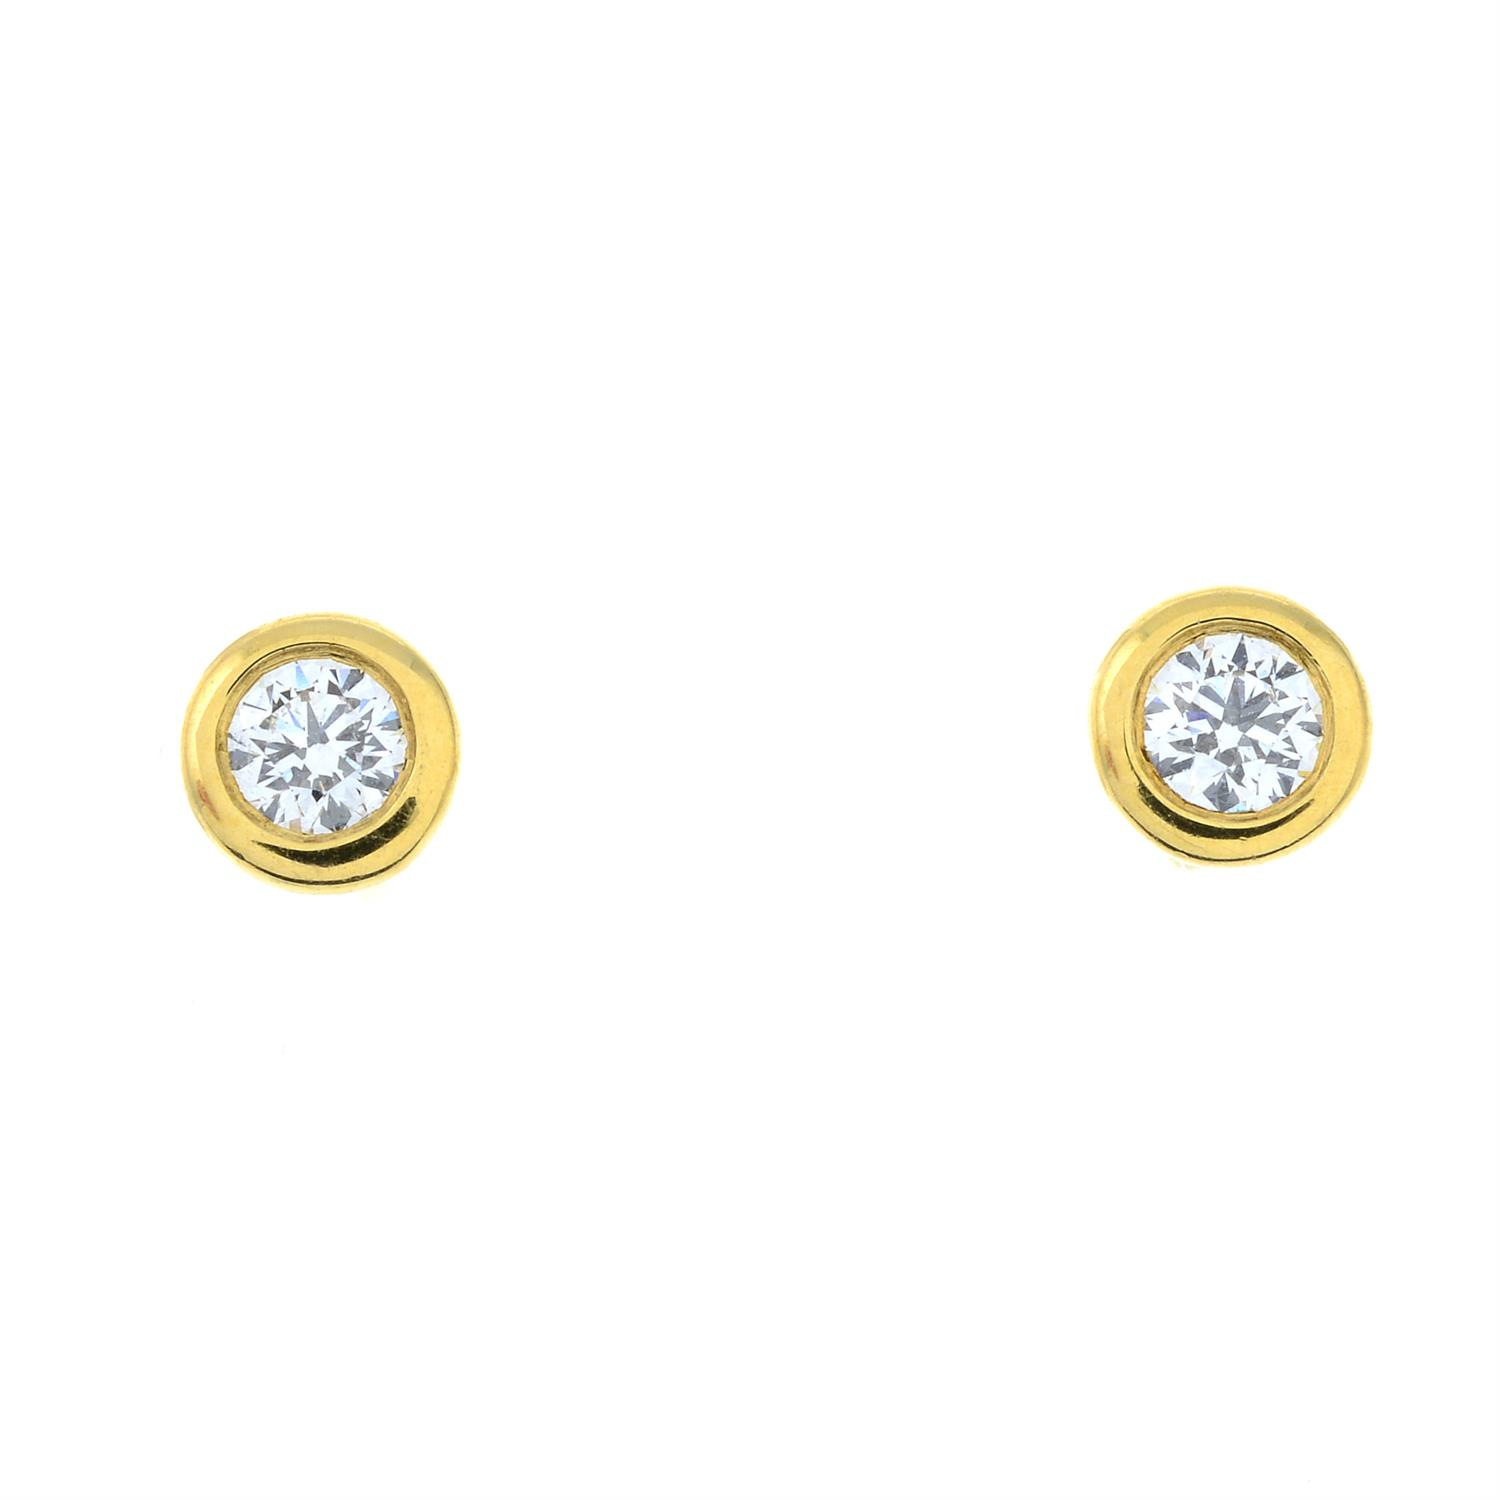 A pair of 'Diamonds by The Yard' earrings, by Elsa Peretti, for Tiffany & Co. - Image 2 of 4